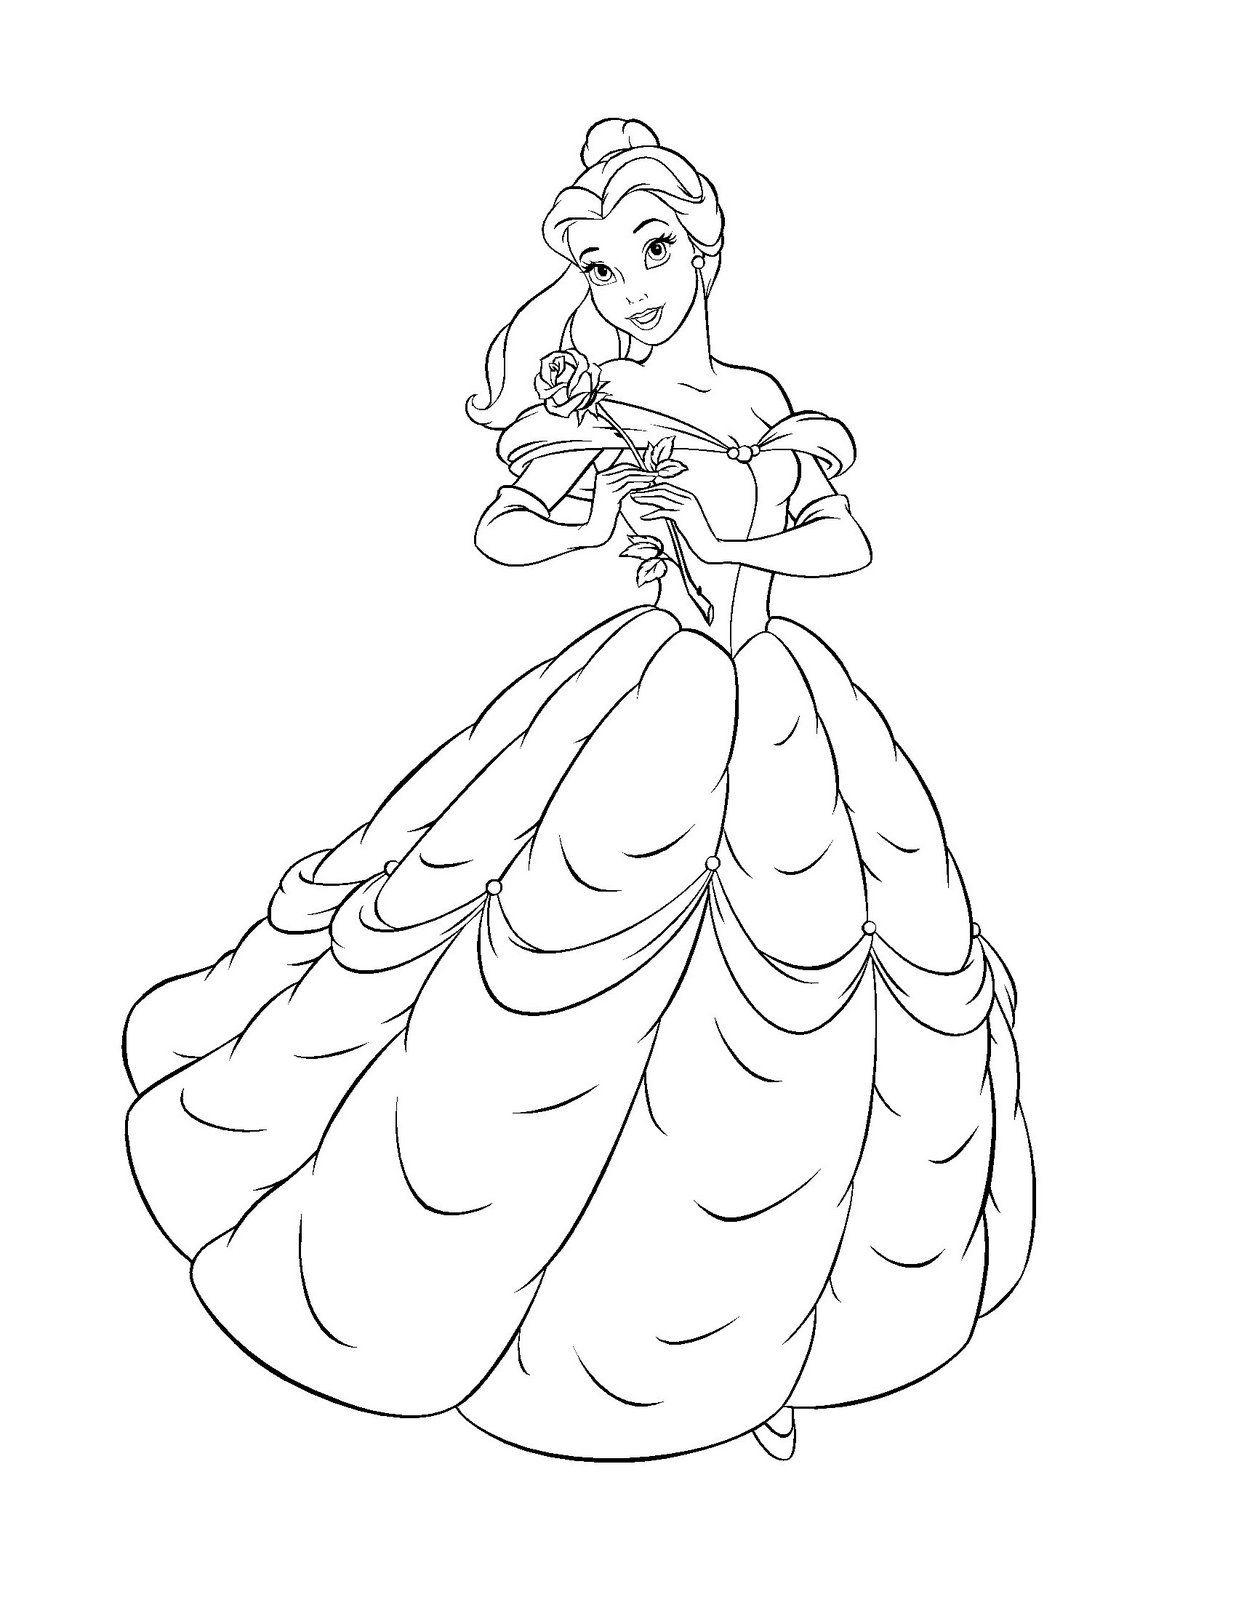 Free Printable Belle Coloring Pages For Kids   disney princess belle printable coloring pages